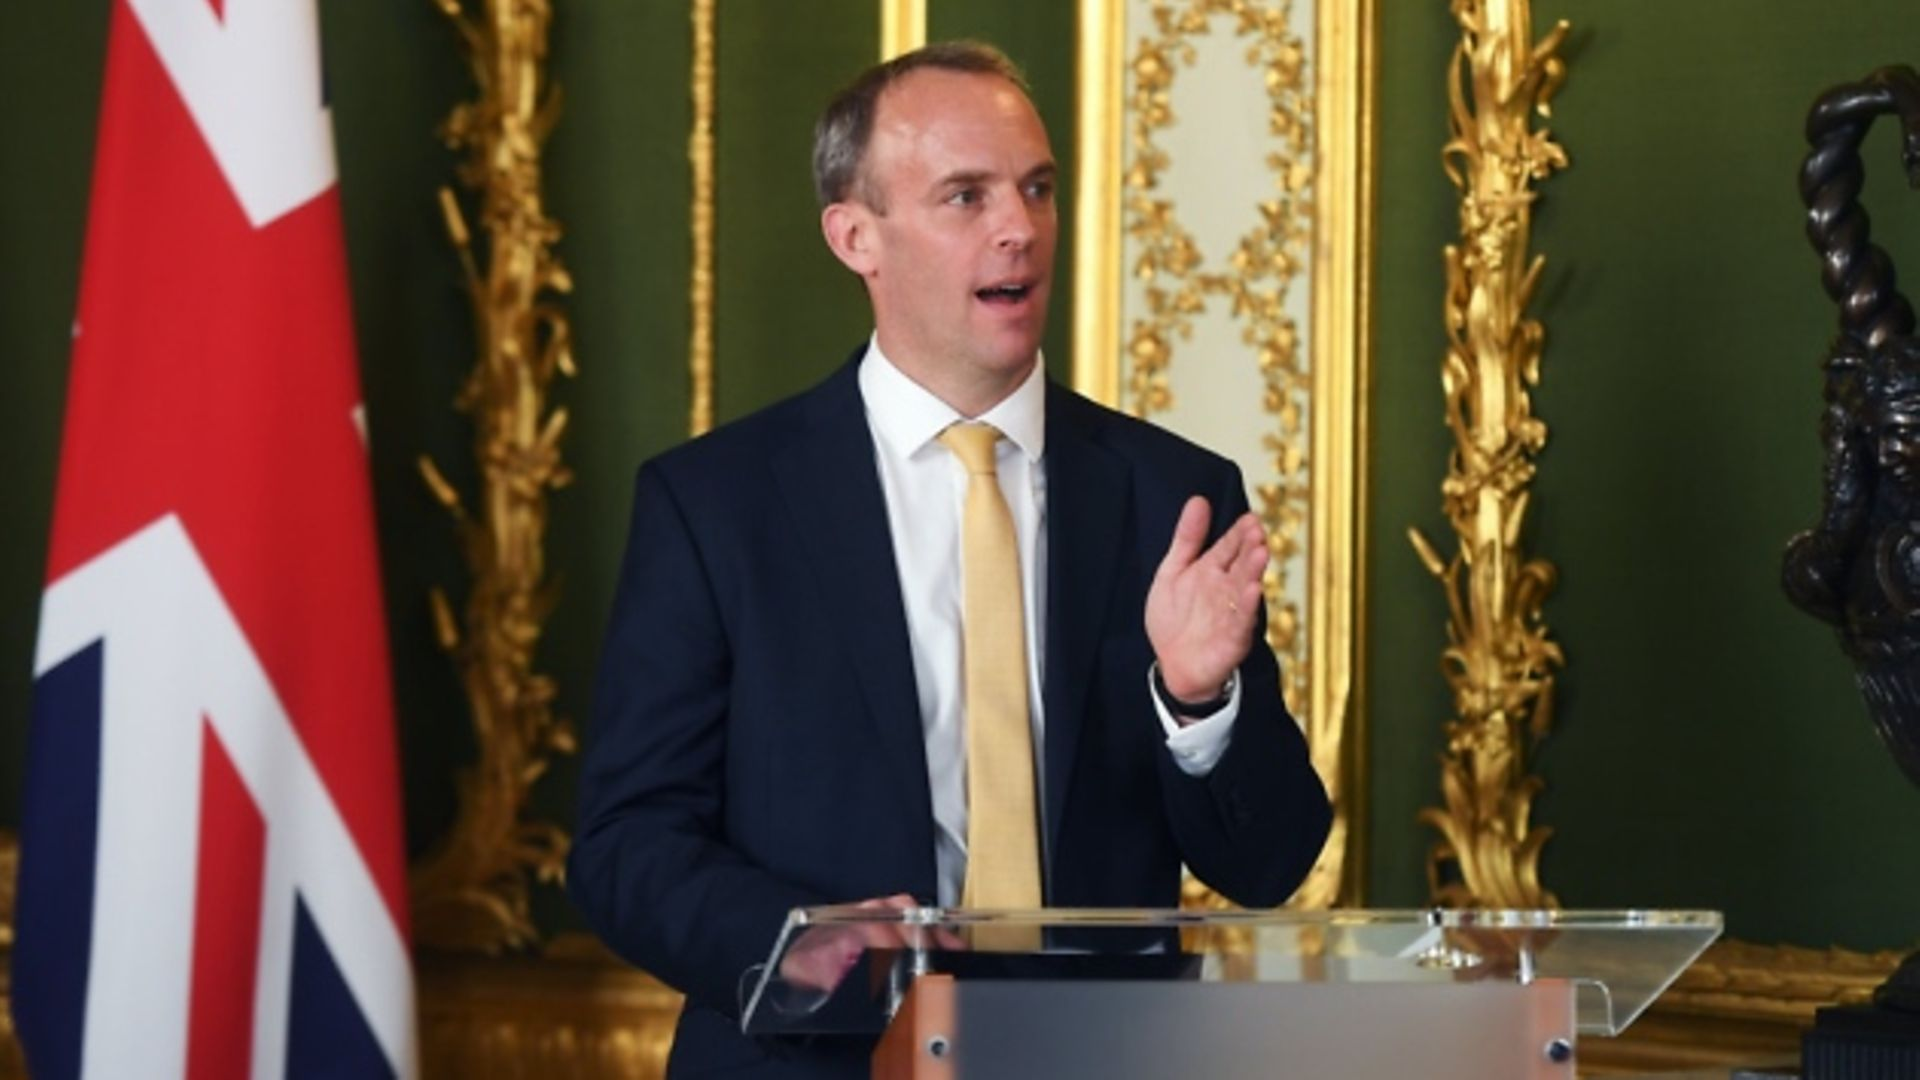 Foreign secretary Dominic Raab during a press conference. Photograph: Peter Summers/PA.